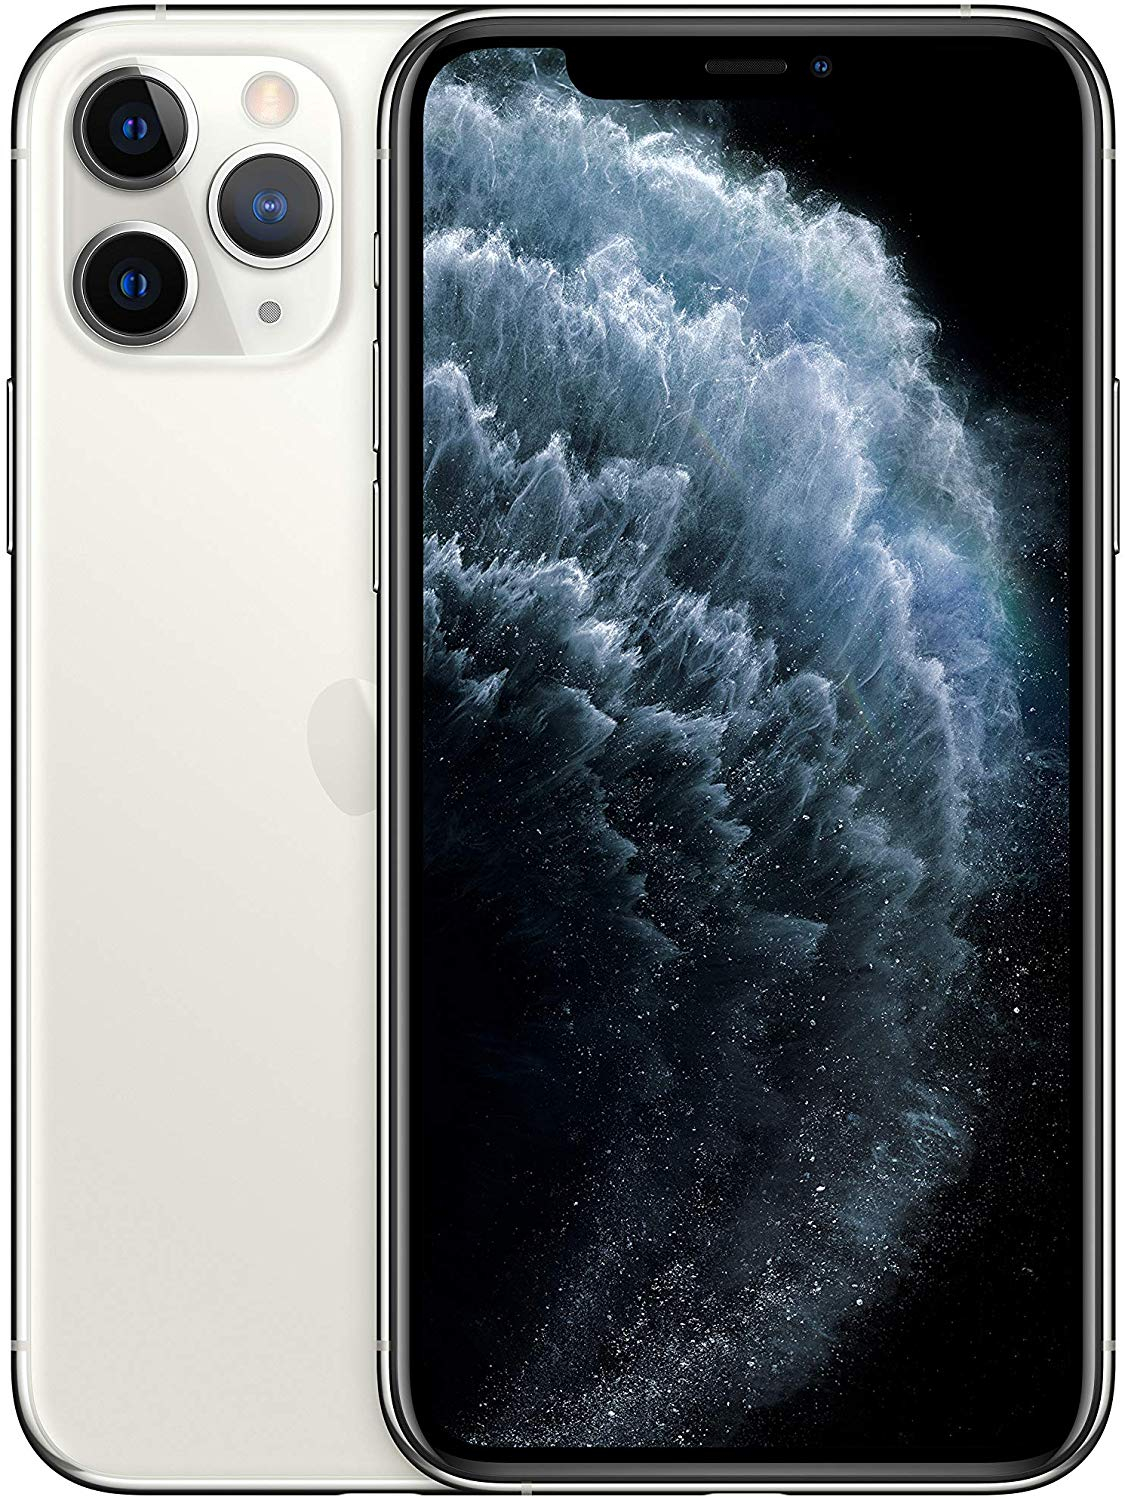 Phone Apple IPhone 11 Pro, Silver Color (Silver), 4 GB RAM, 256 GB ROM, OLED Display Super Retina XDR 5,8